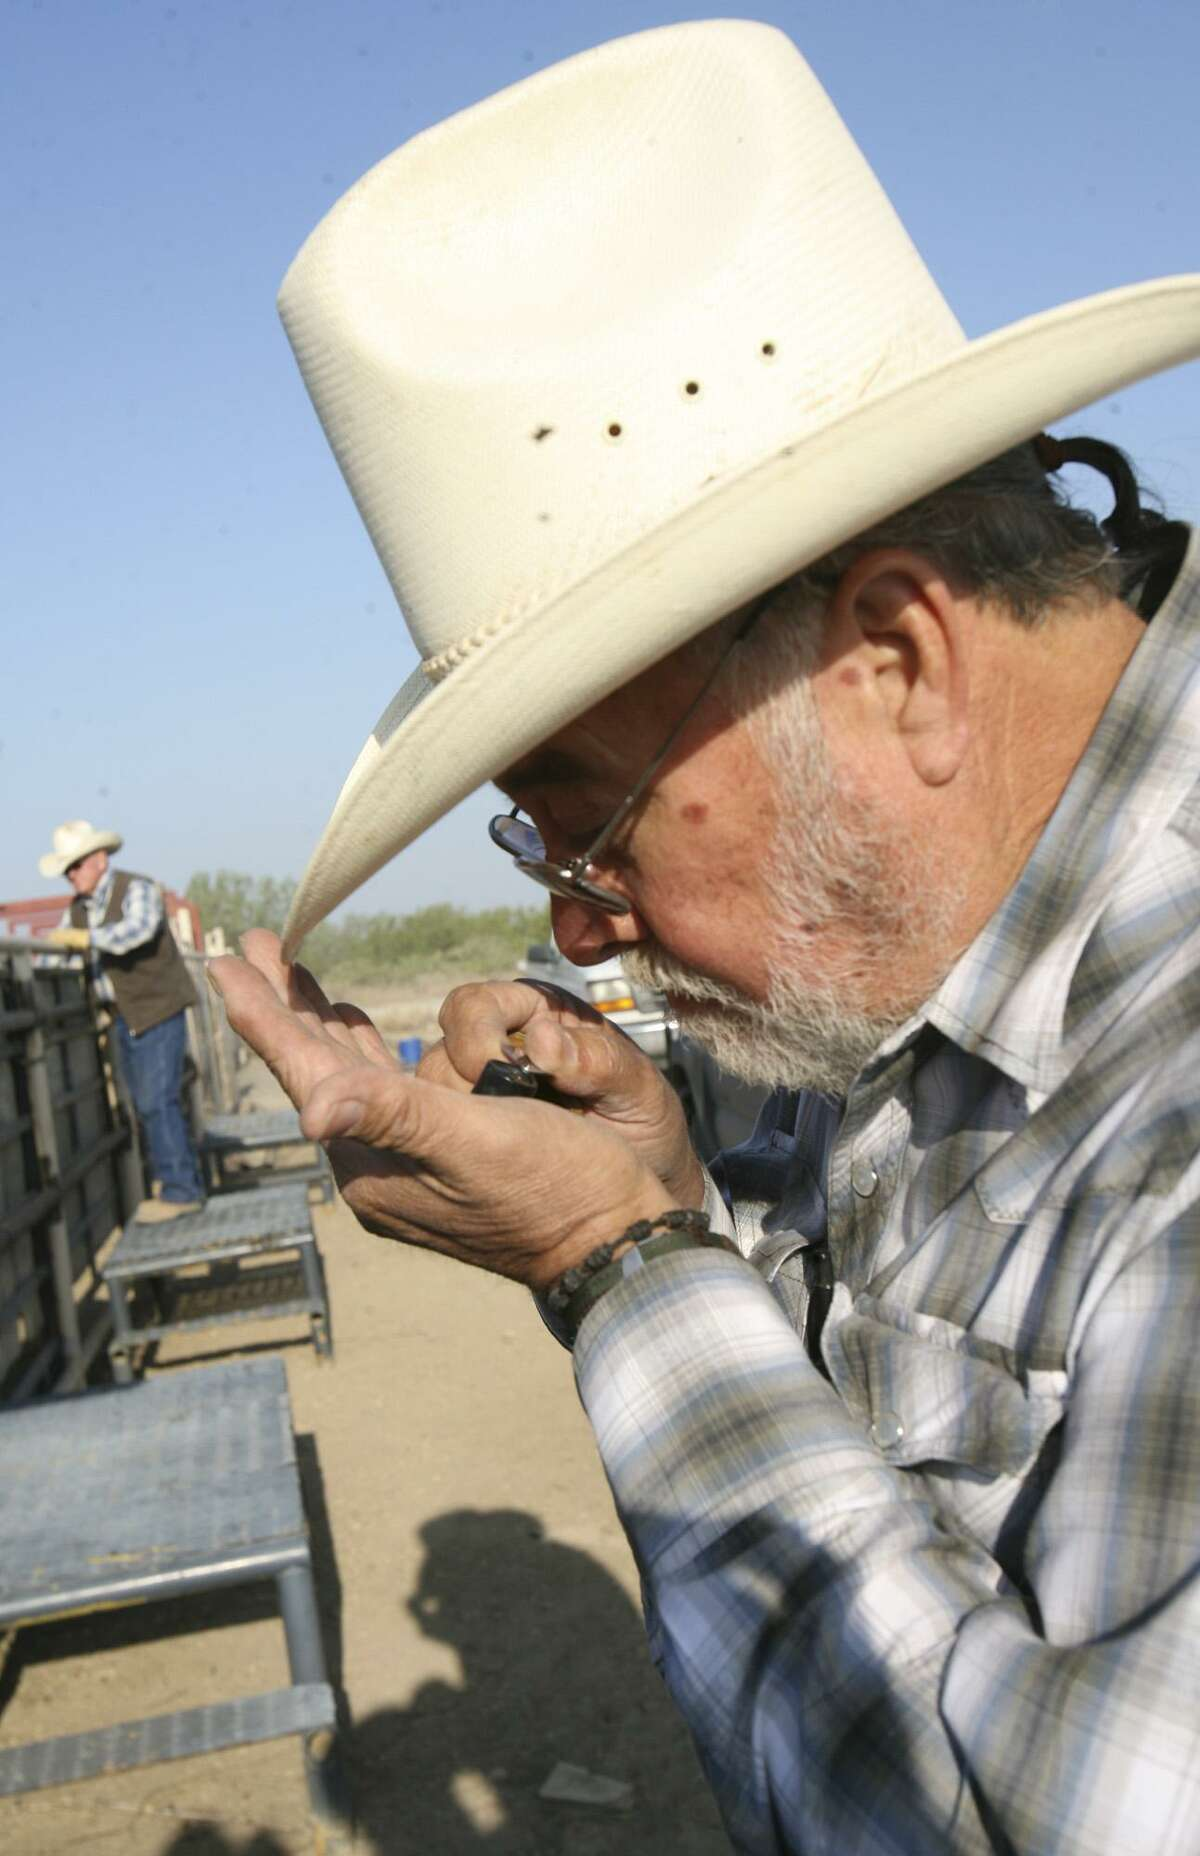 A tick inspector inspects a tick that was plucked off the steer at the Guerra Ranch in South Texas. Cattle fever tick carry a disease causes infected cattle to suffer bloody urine, diarrhea, fever and extreme anemia before dying. The disease once devastated U.S. cattle herds, wiping out 90 percent of cattle as far east as Pennsylvania and west as California.